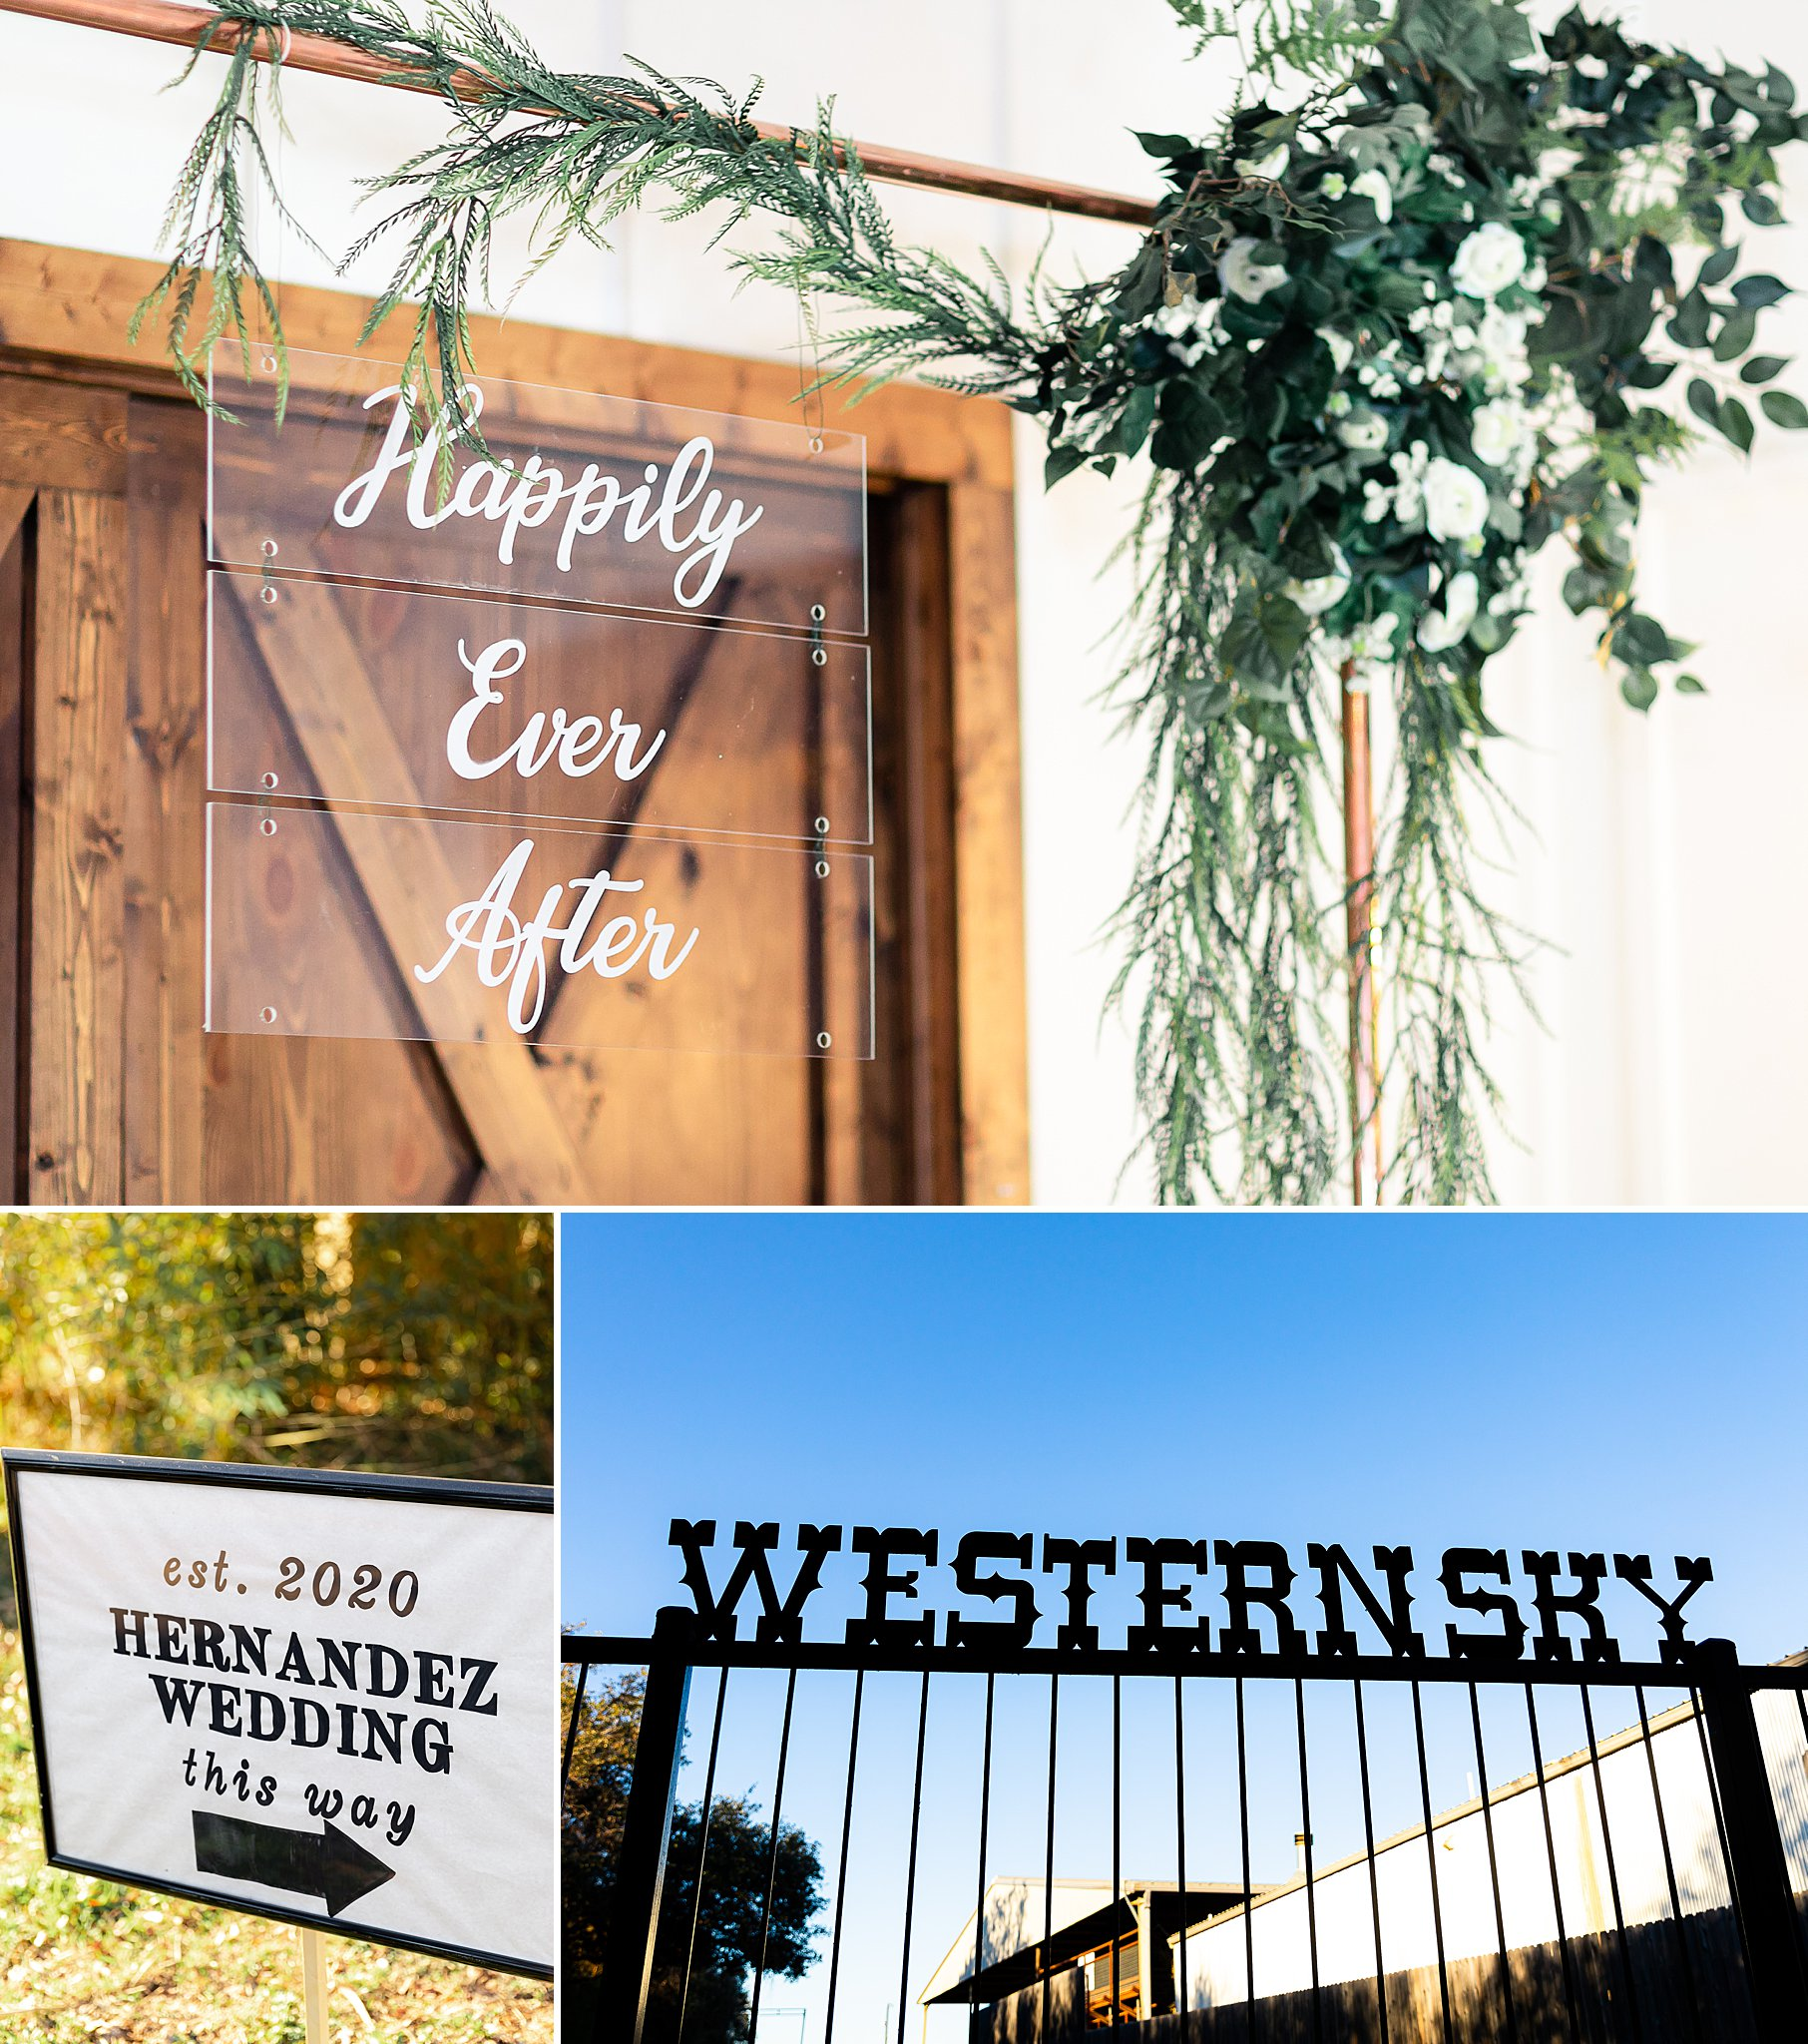 Carly-Barton-Photography-Texas-Wedding-Photographer-Western-Sky-Wedding-Event-Venue-Emerald-Green-Theme_0001.jpg